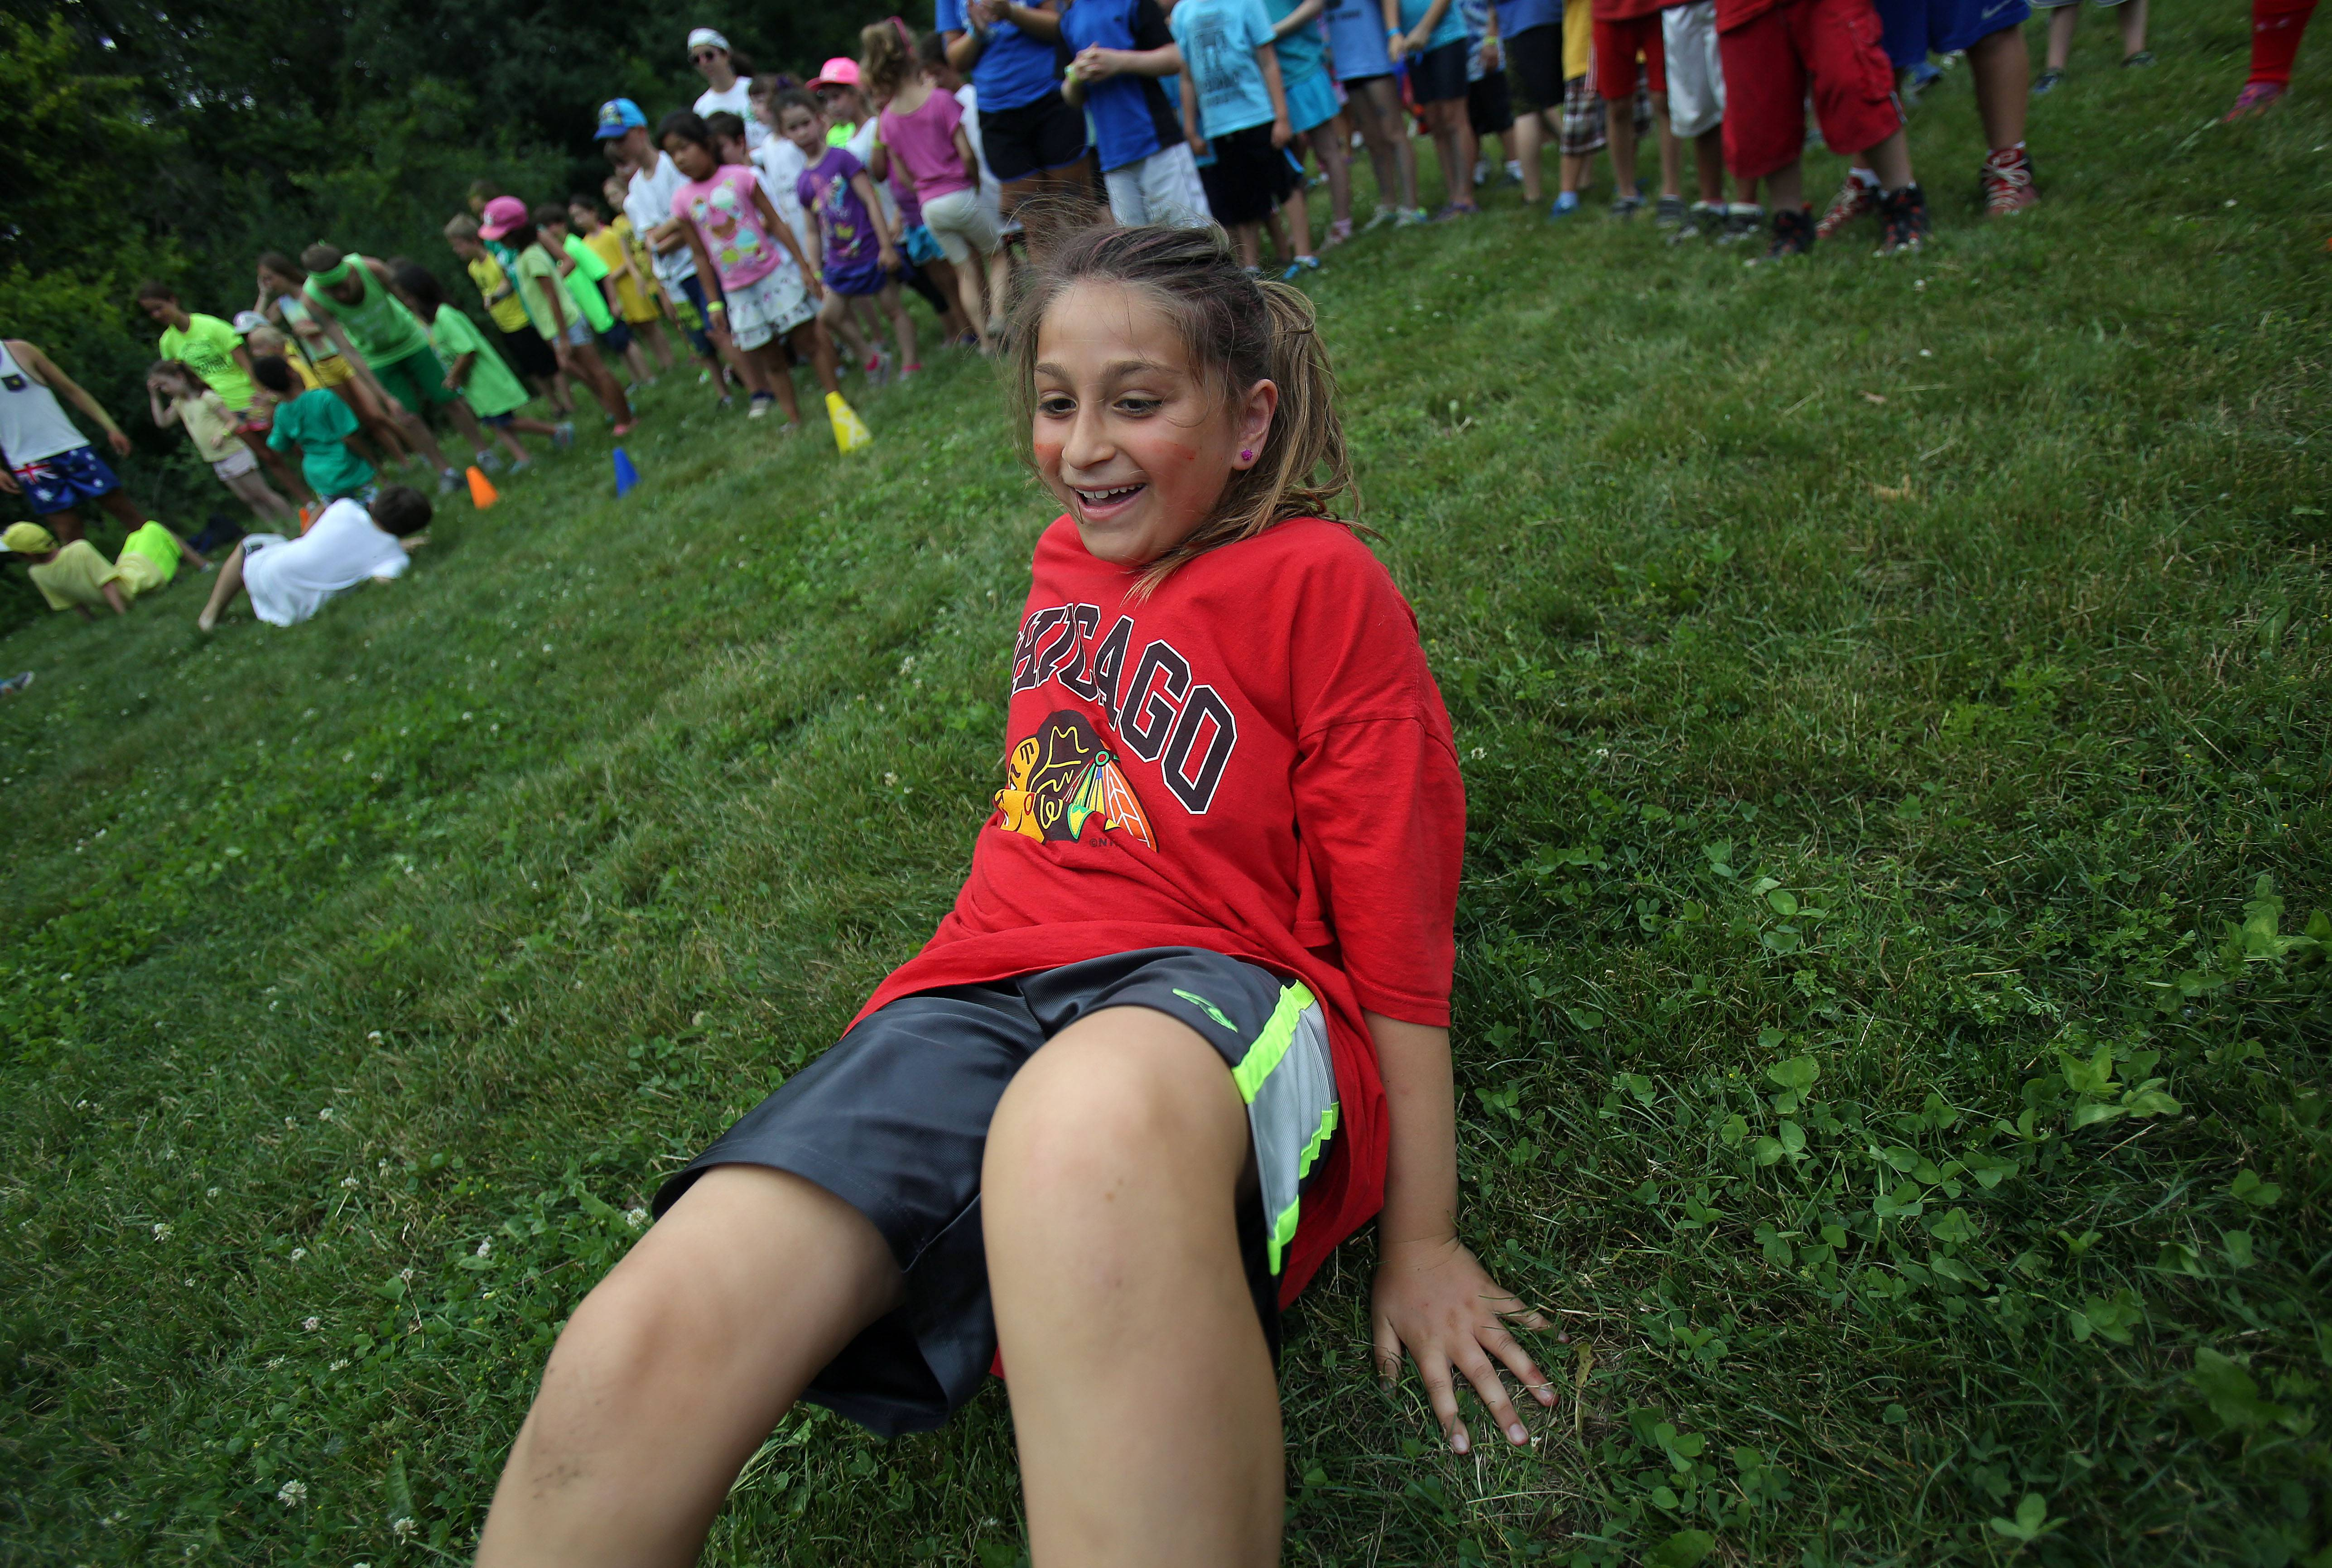 Mara Feldman, 8, of Buffalo Grove participates in a crab walk relay at Camp Henry Horner in Ingleside. The camp is celebrating its 100th year with an alumni anniversary celebration on July 20.